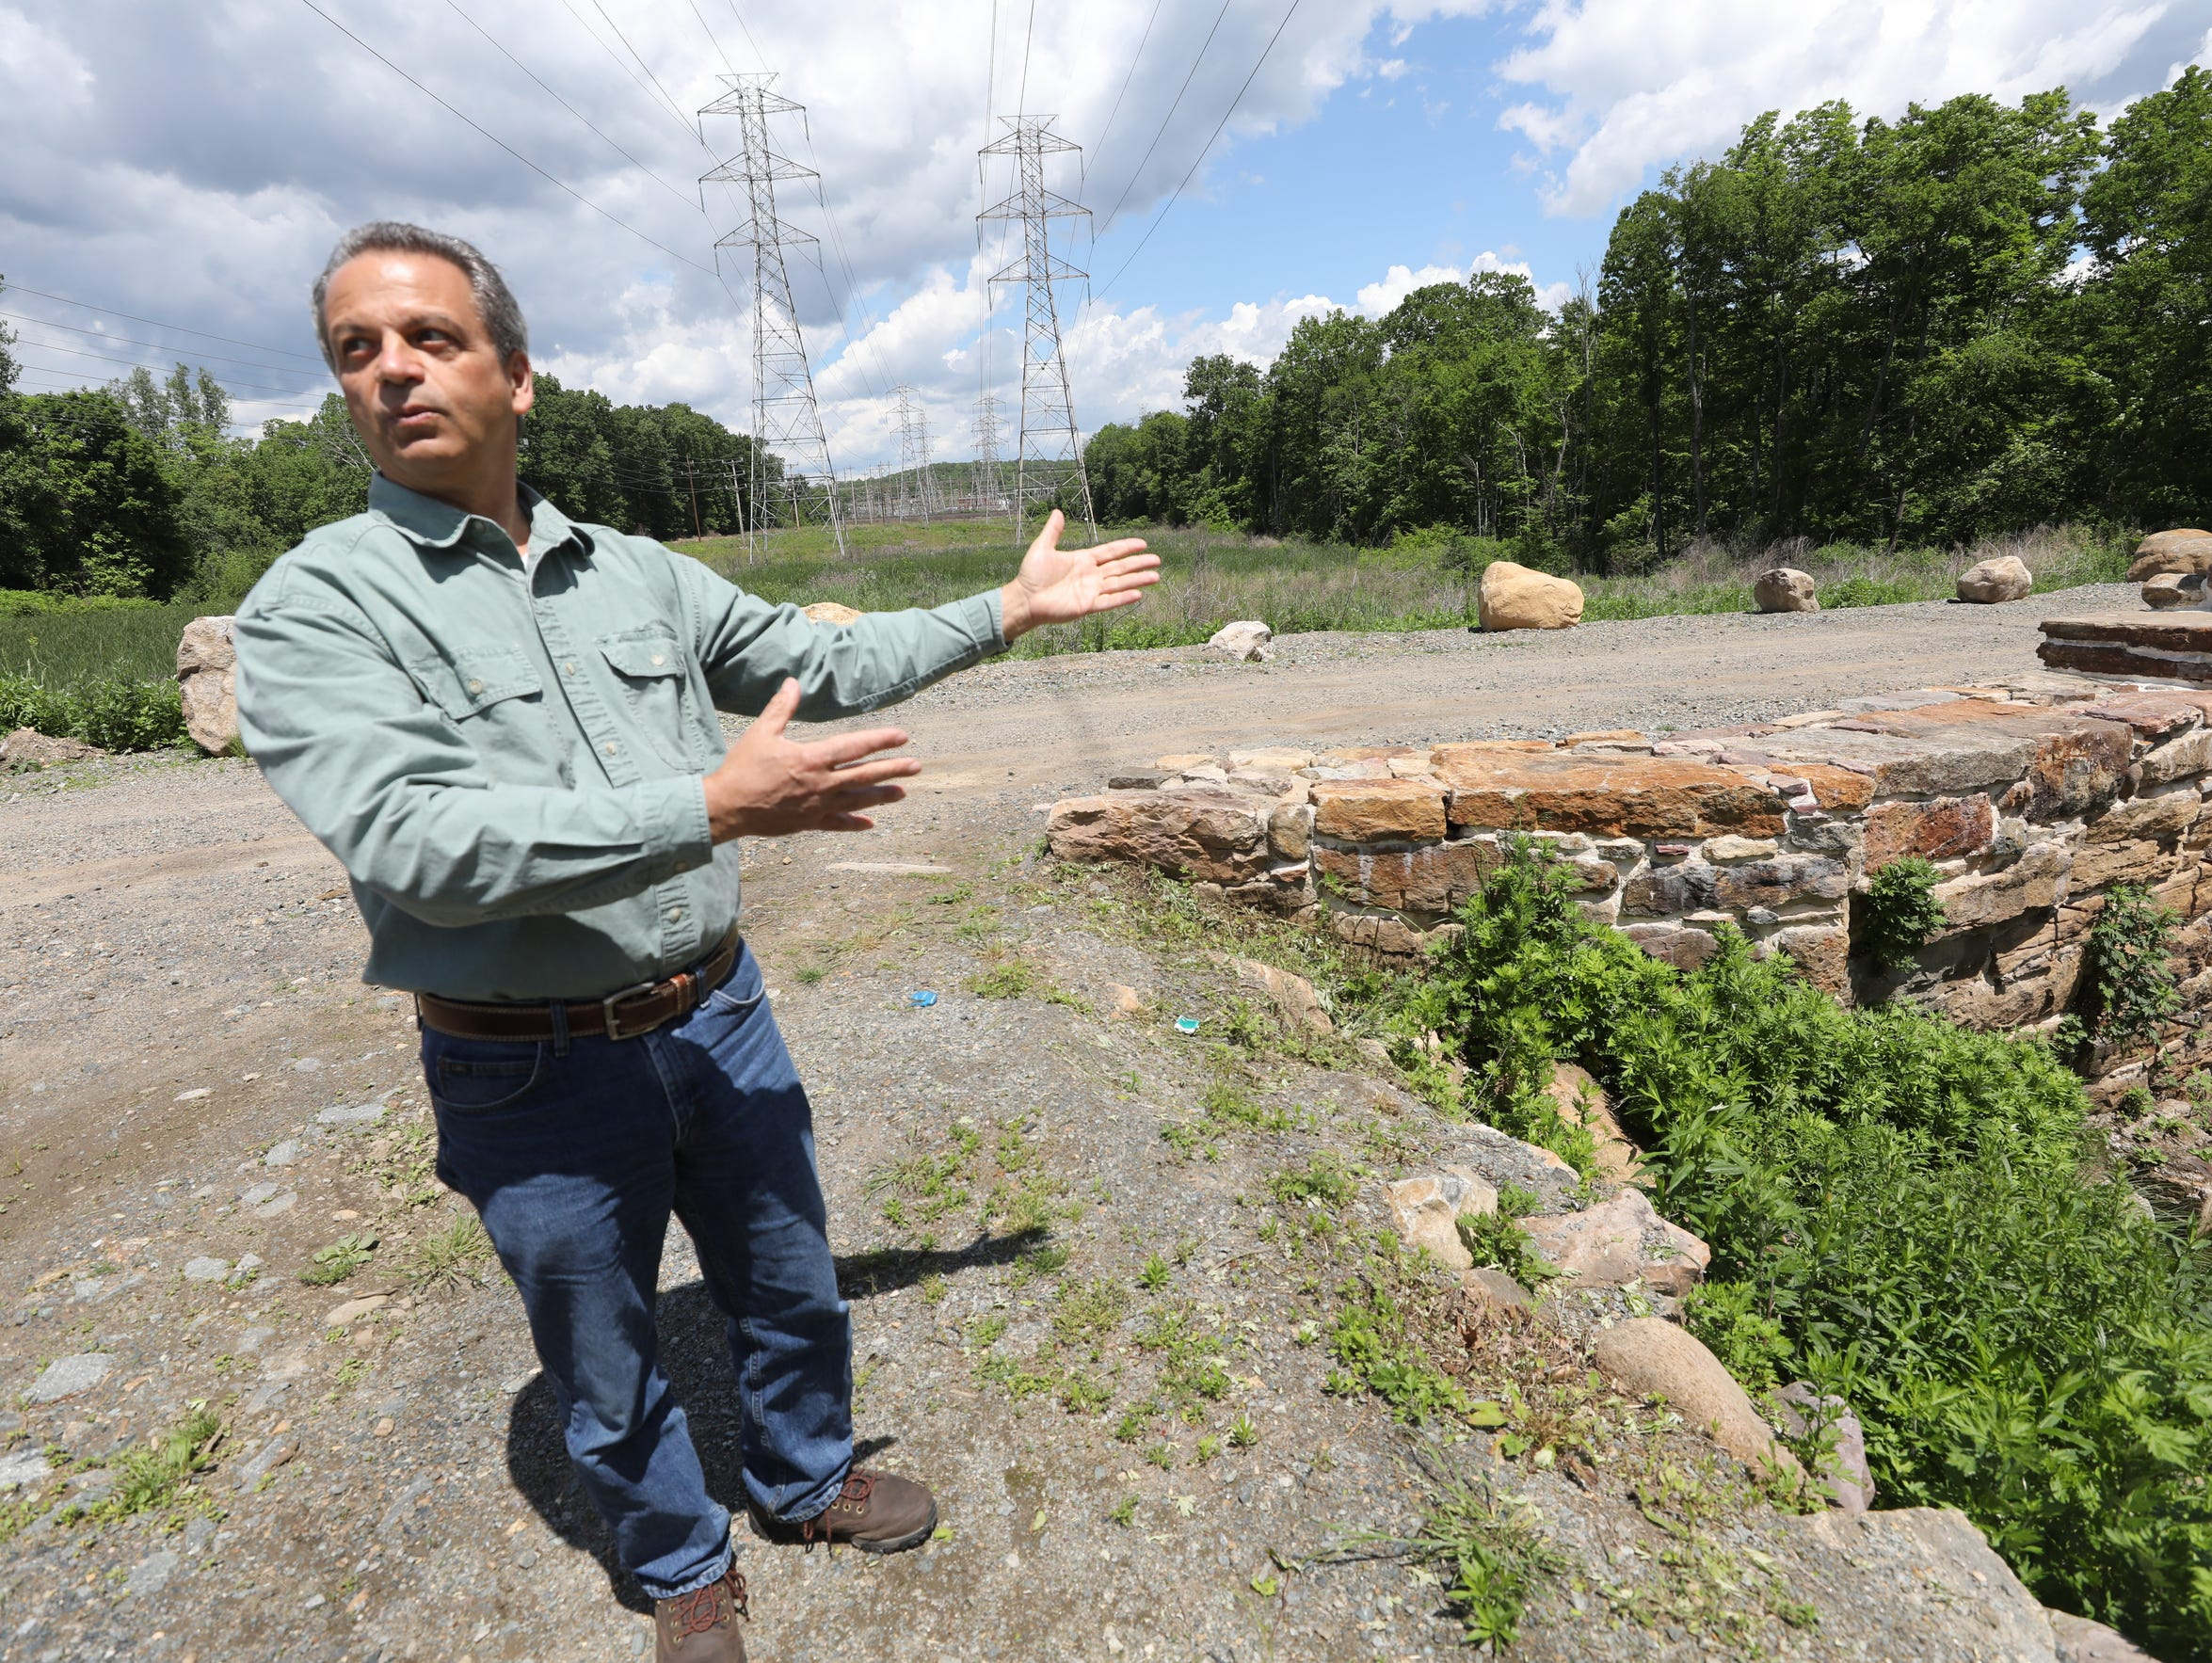 Morris Canal route reborn as greenway parks and trails